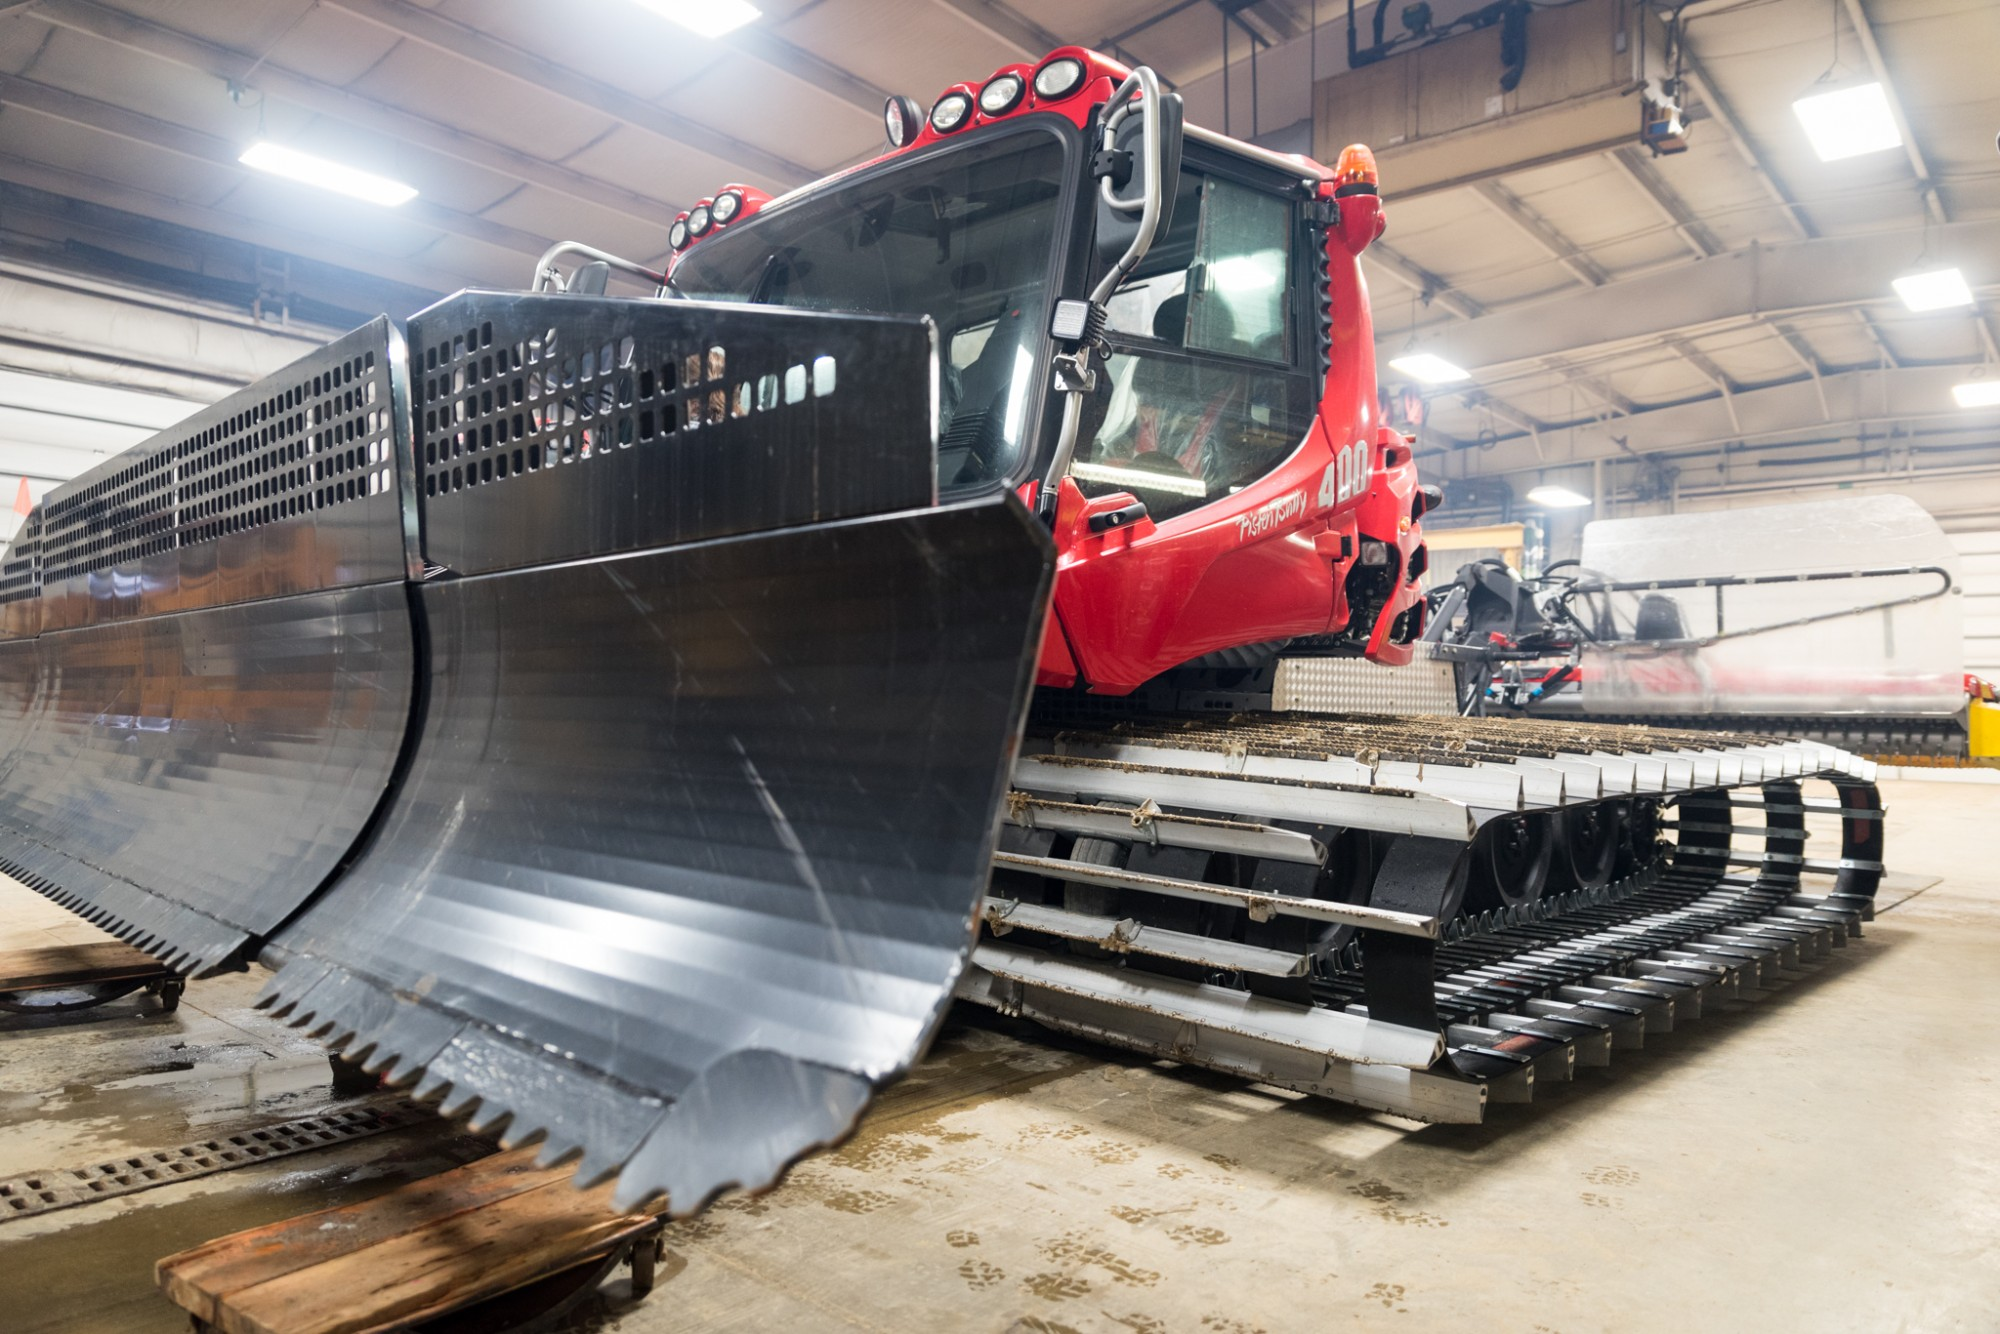 Pisten Bully 400 Snow Cat arrives at Snow Trails in Mansfield, OH